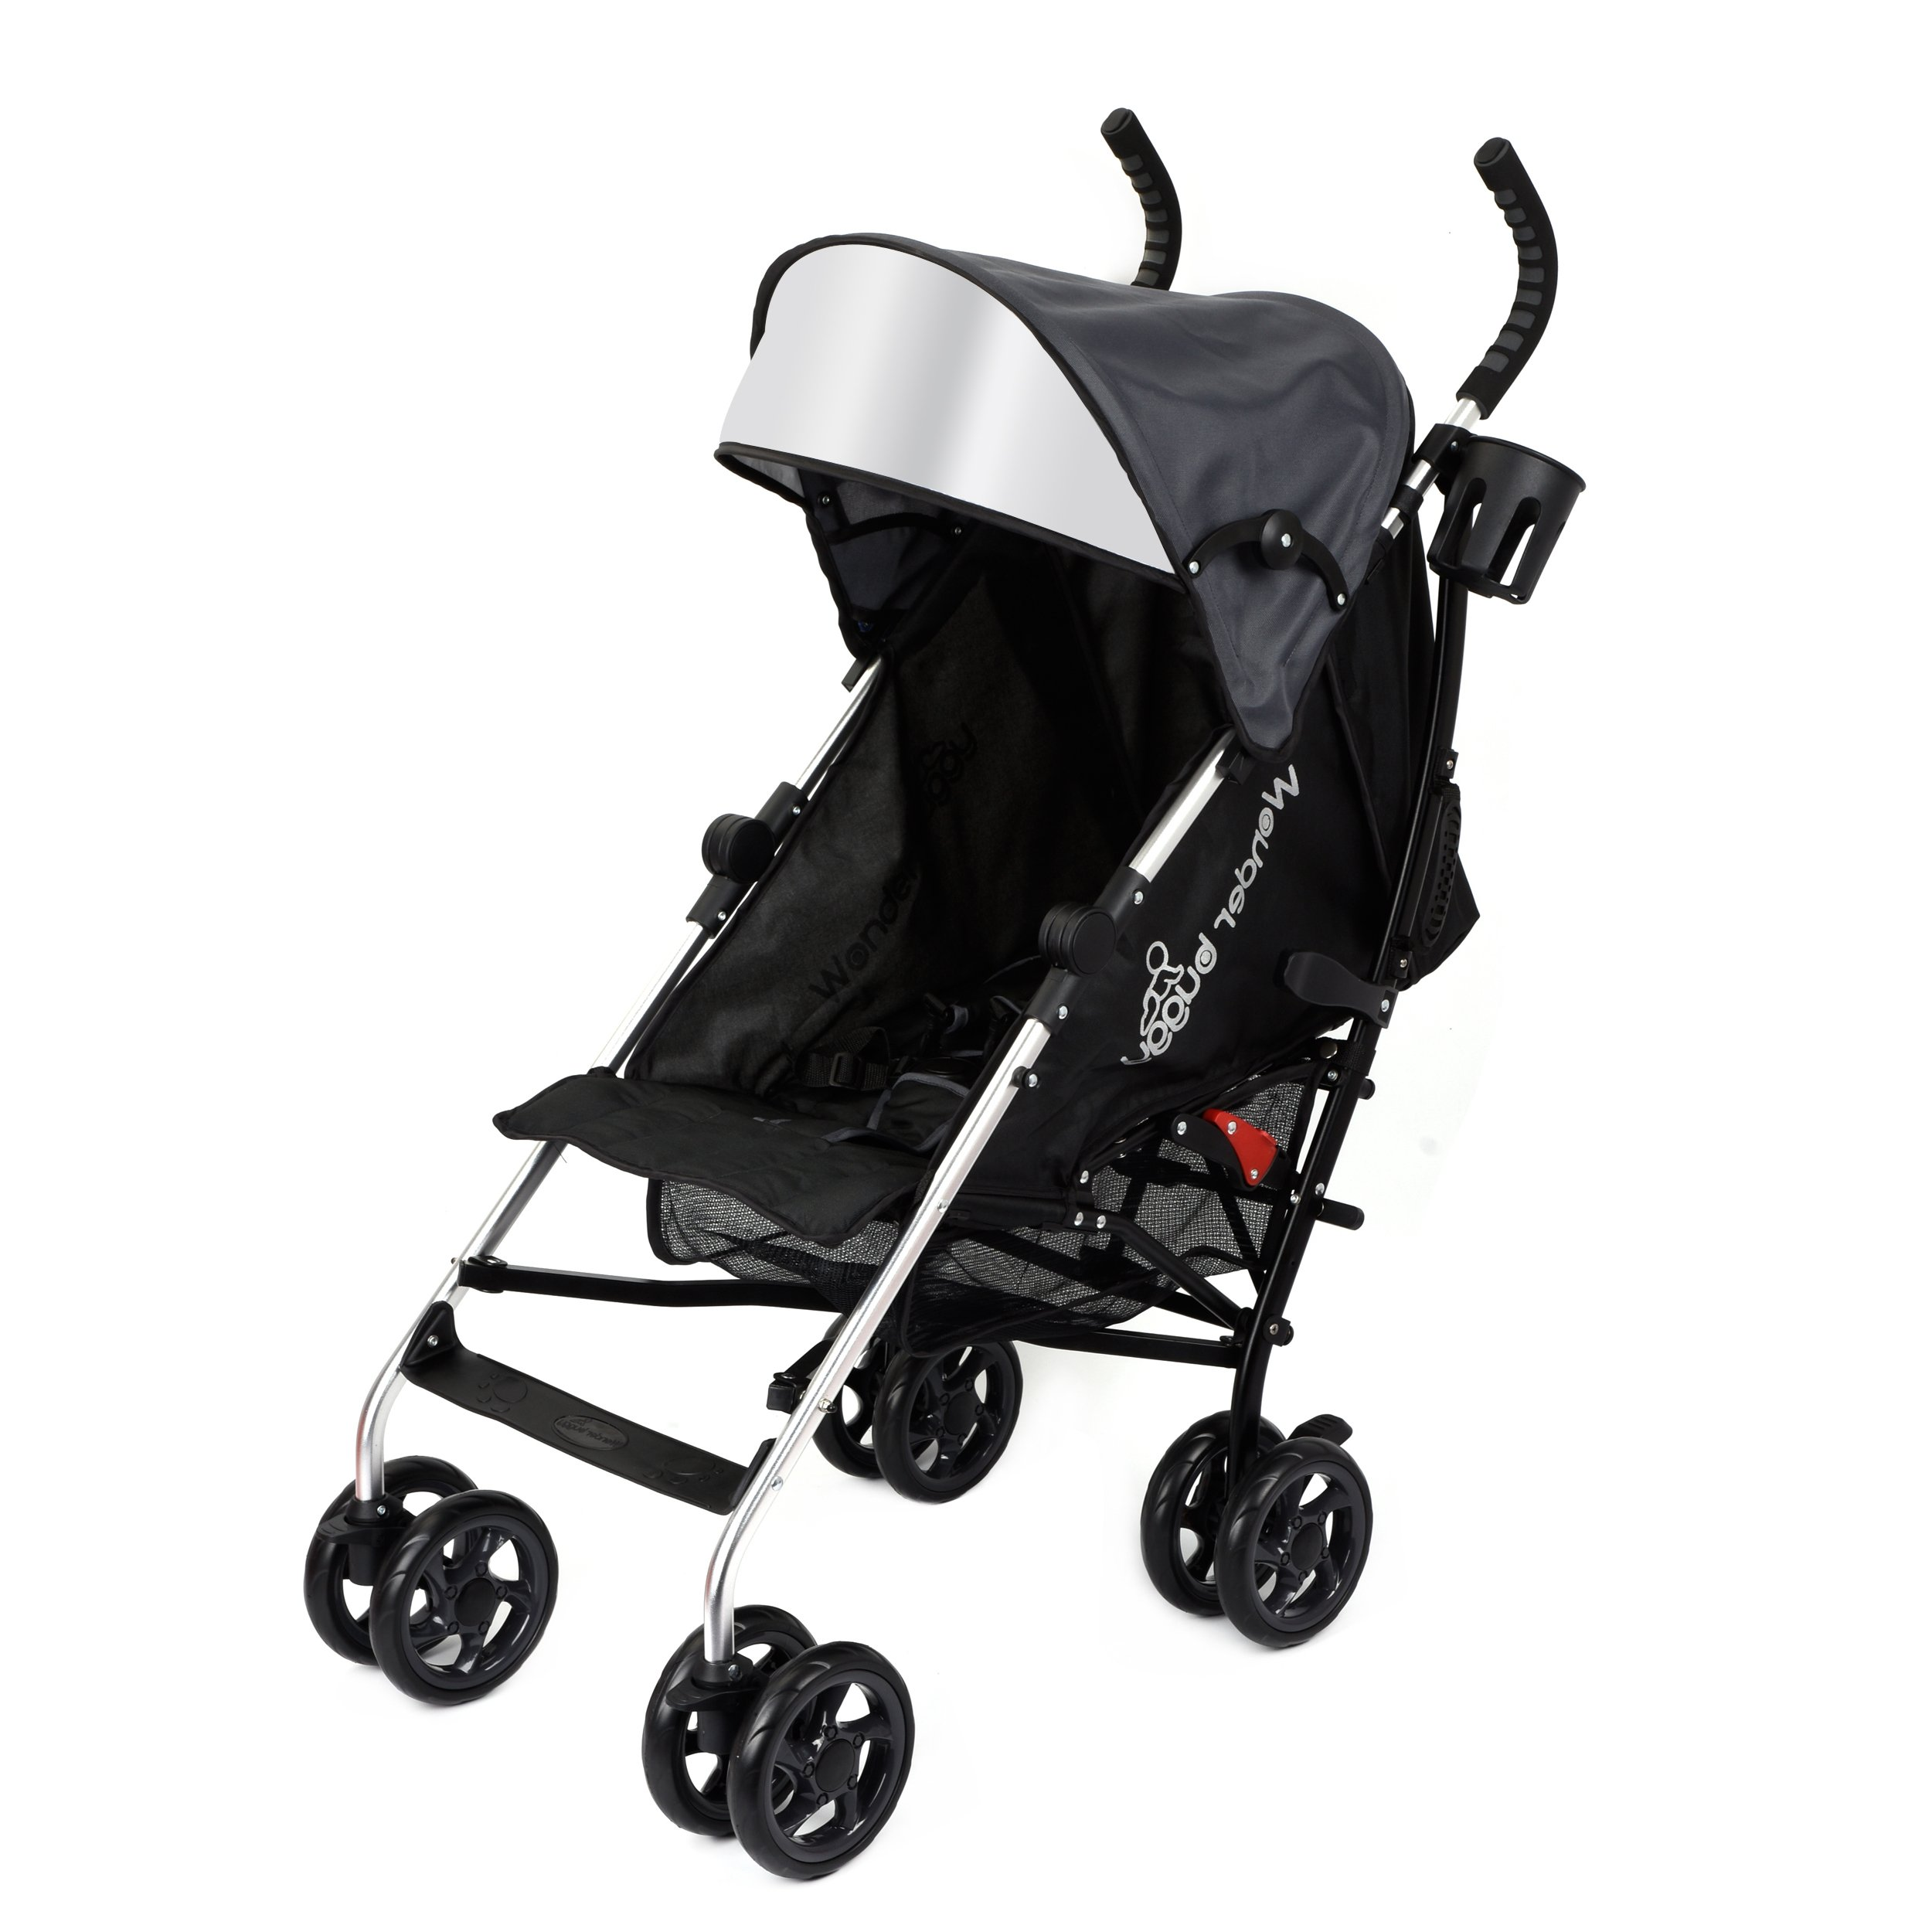 Wonder Buggy Baby Stroller Lightweight All Town Rider Four Position Stroller with Sun Visor, Black